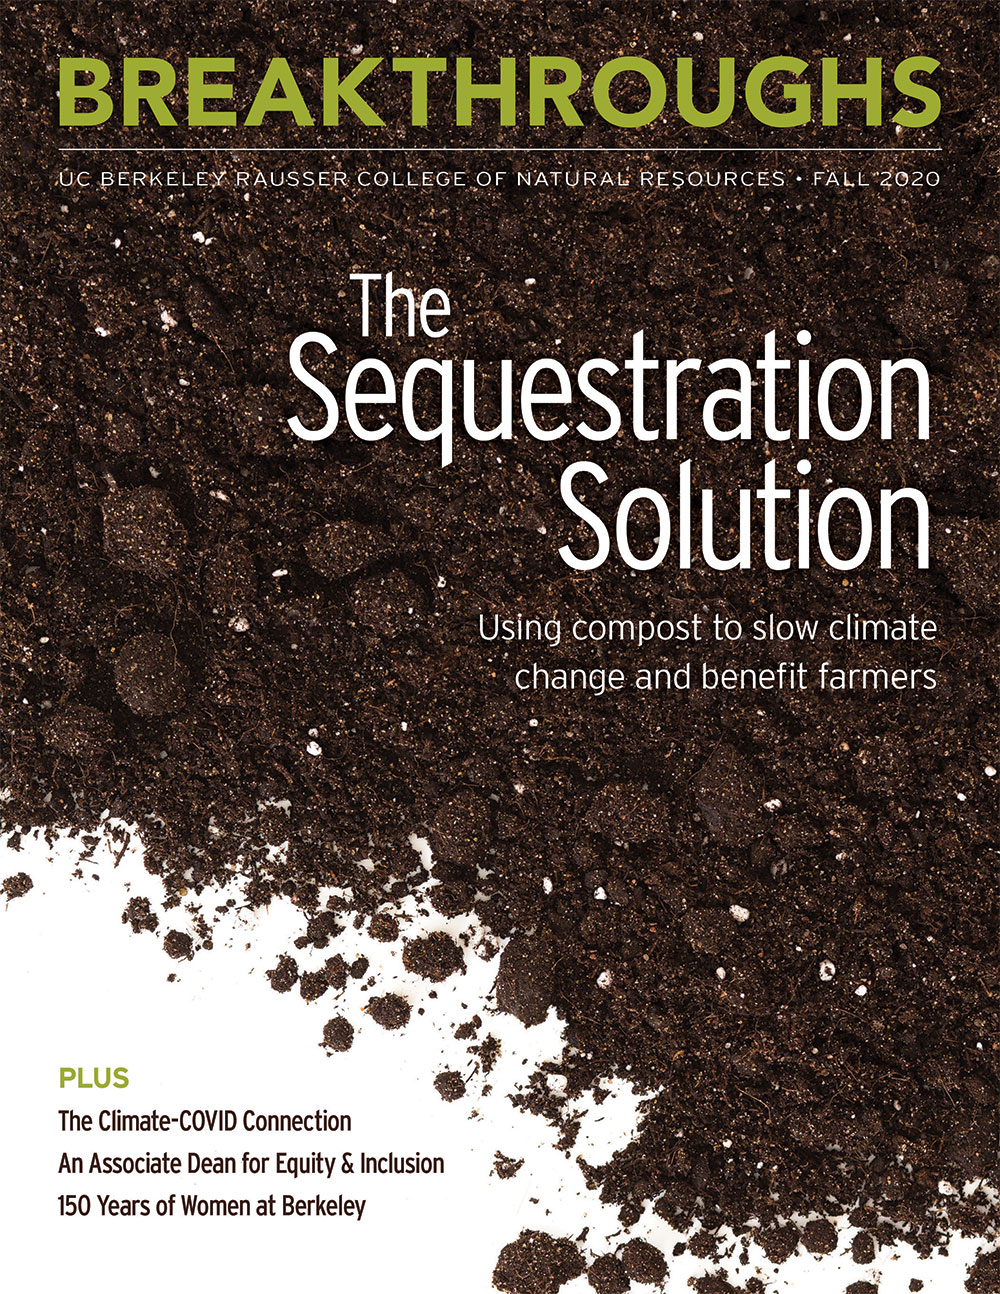 Cover of fall 2020 breakthroughs magazine. Image of soil on a white background.